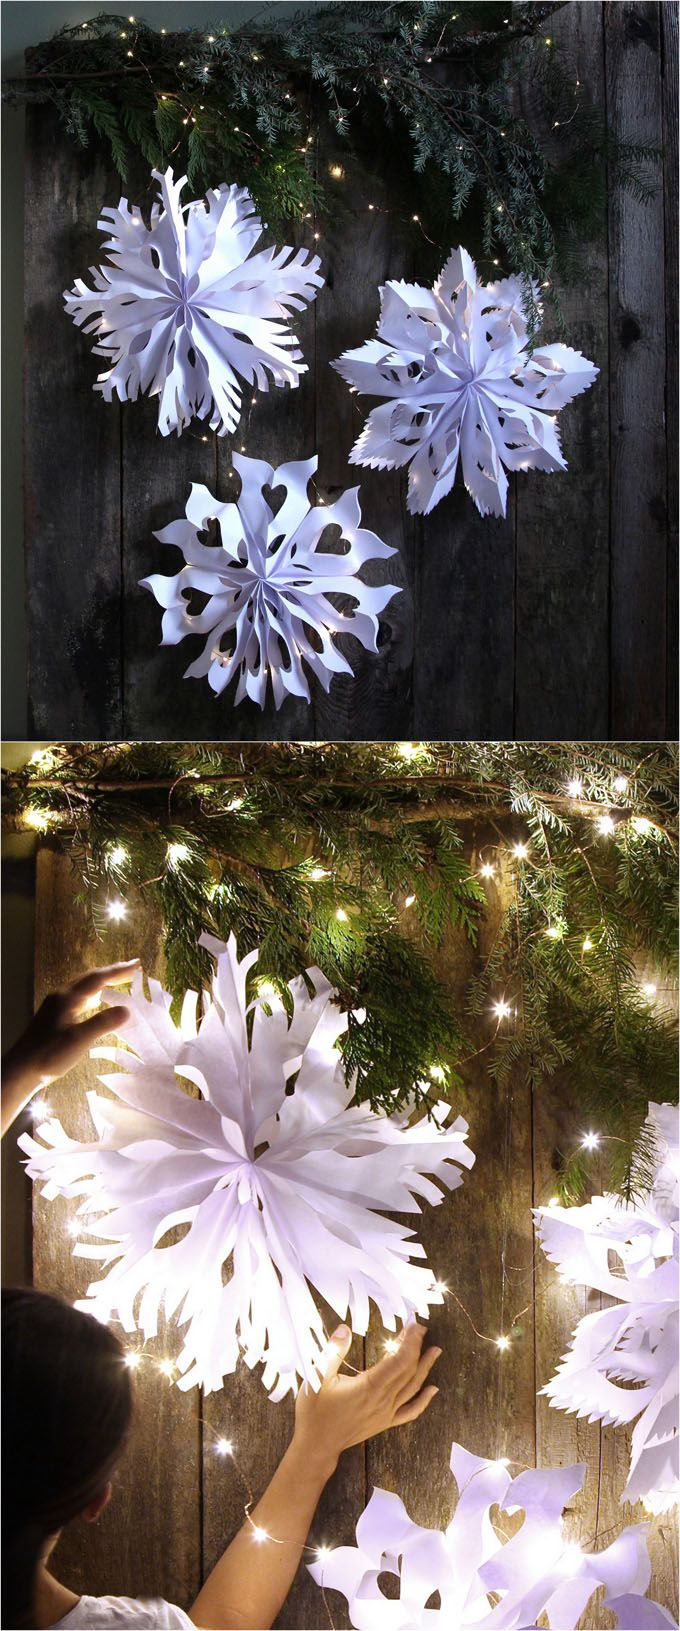 Giant Snowflake Pendants from Paper Bags – Free White Paper Template